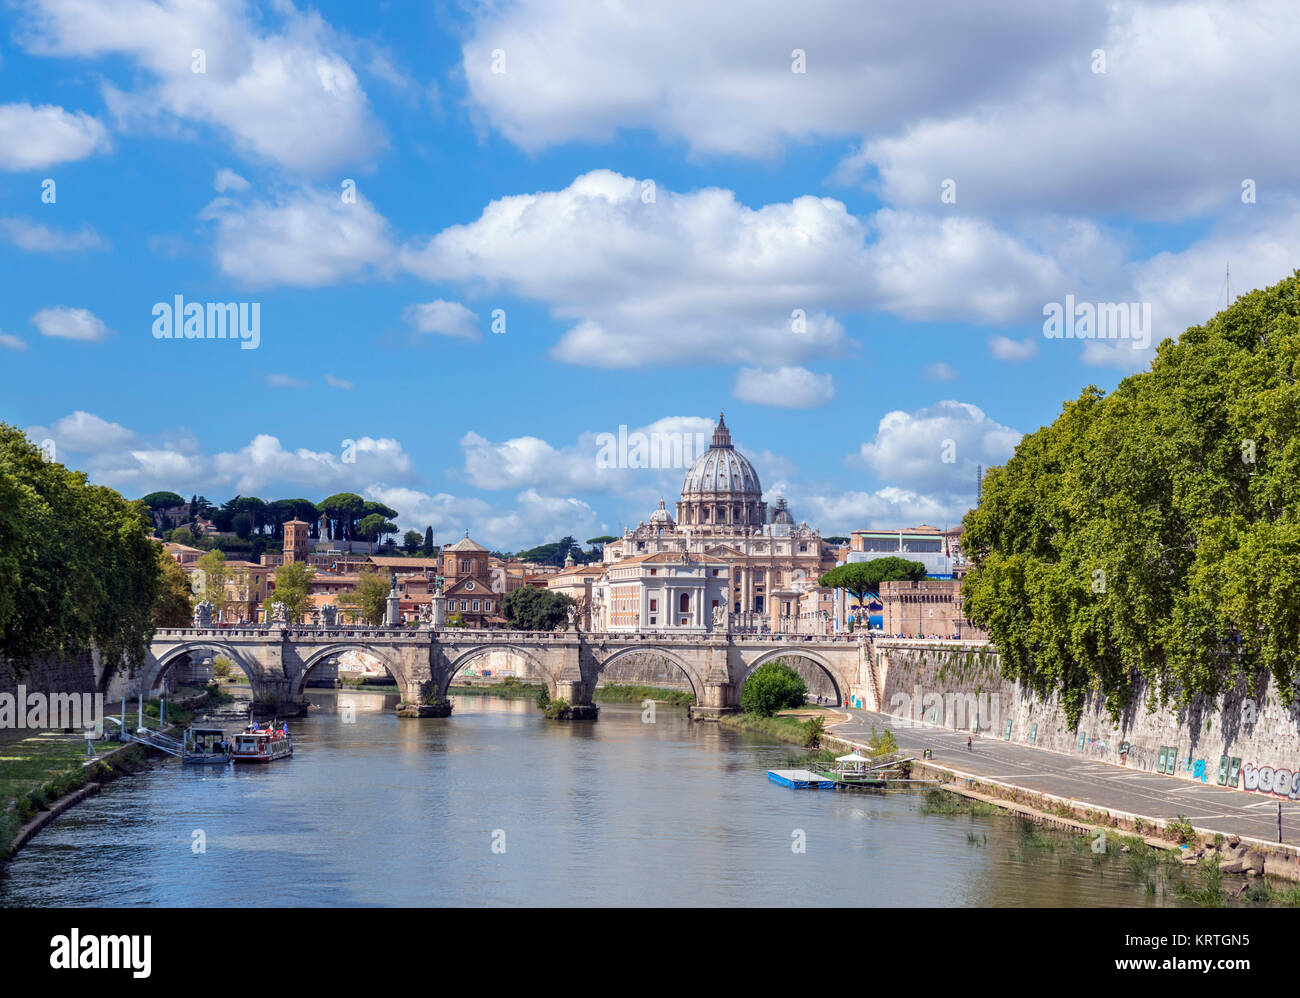 St Peter's Basilica and the Ponte Sant'Angelo over the River Tiber, Rome, Italy - Stock Image